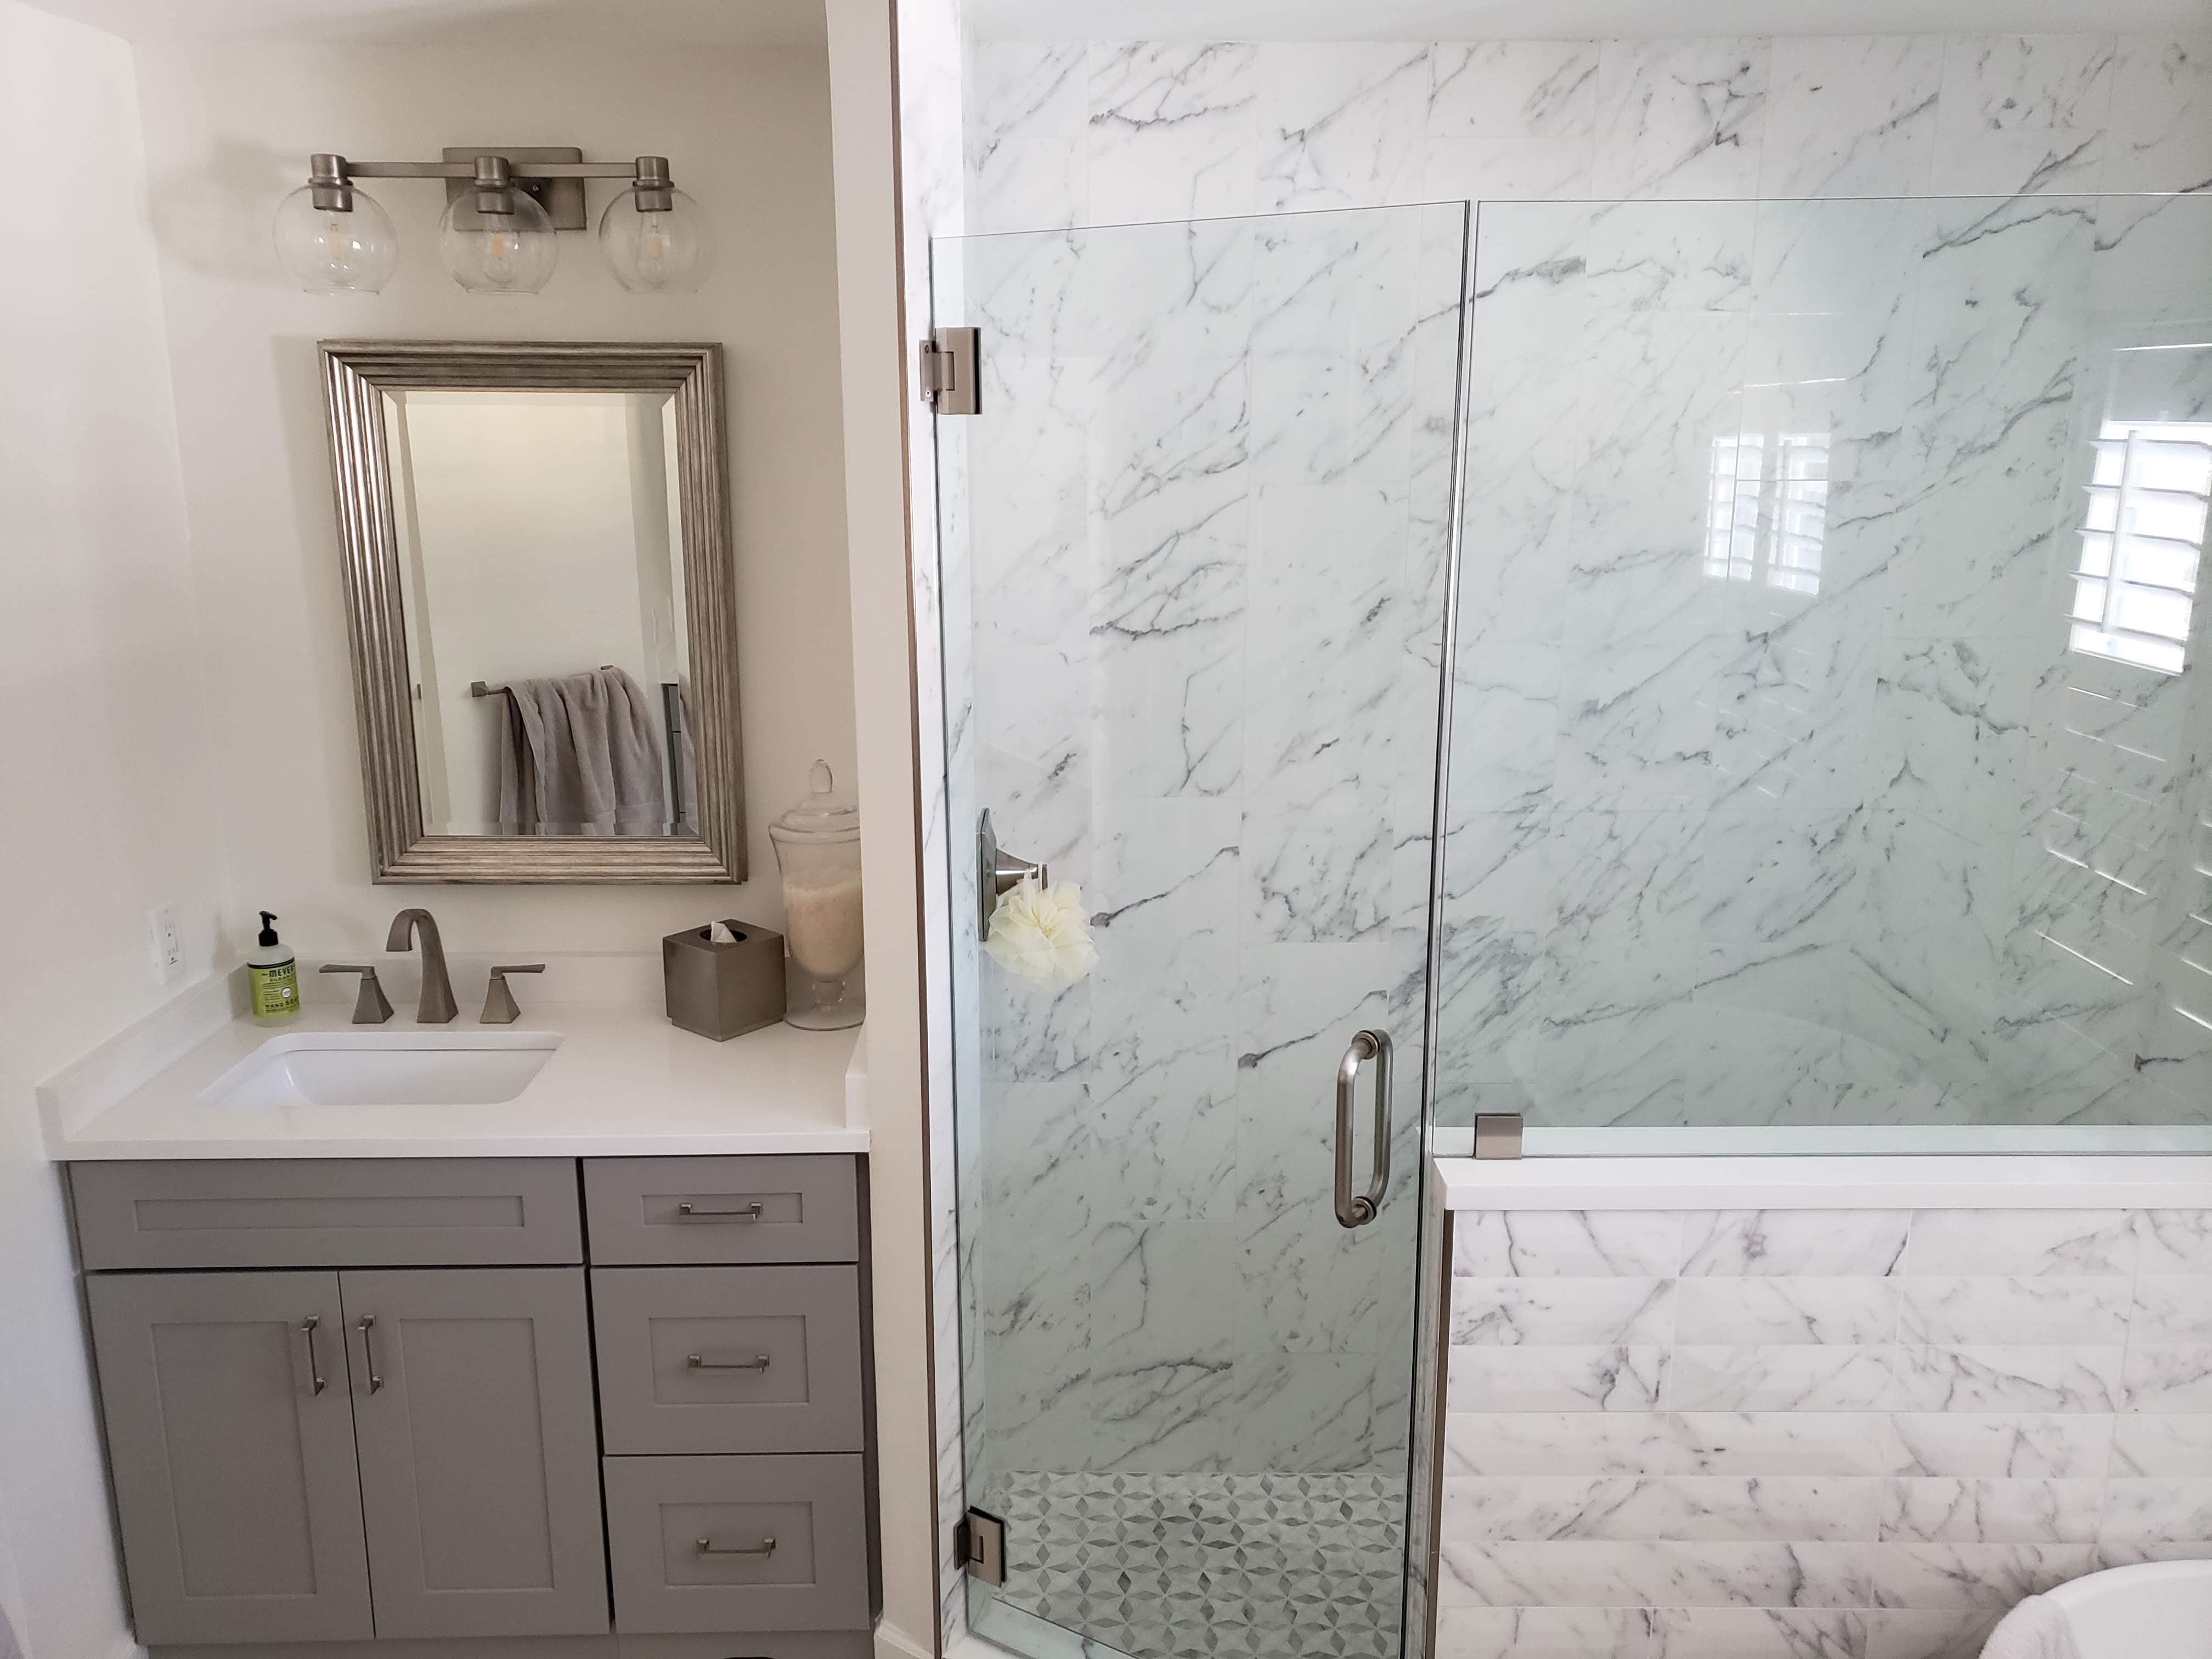 Frame-less walk-in shower installation from Relo Interiors Serivces